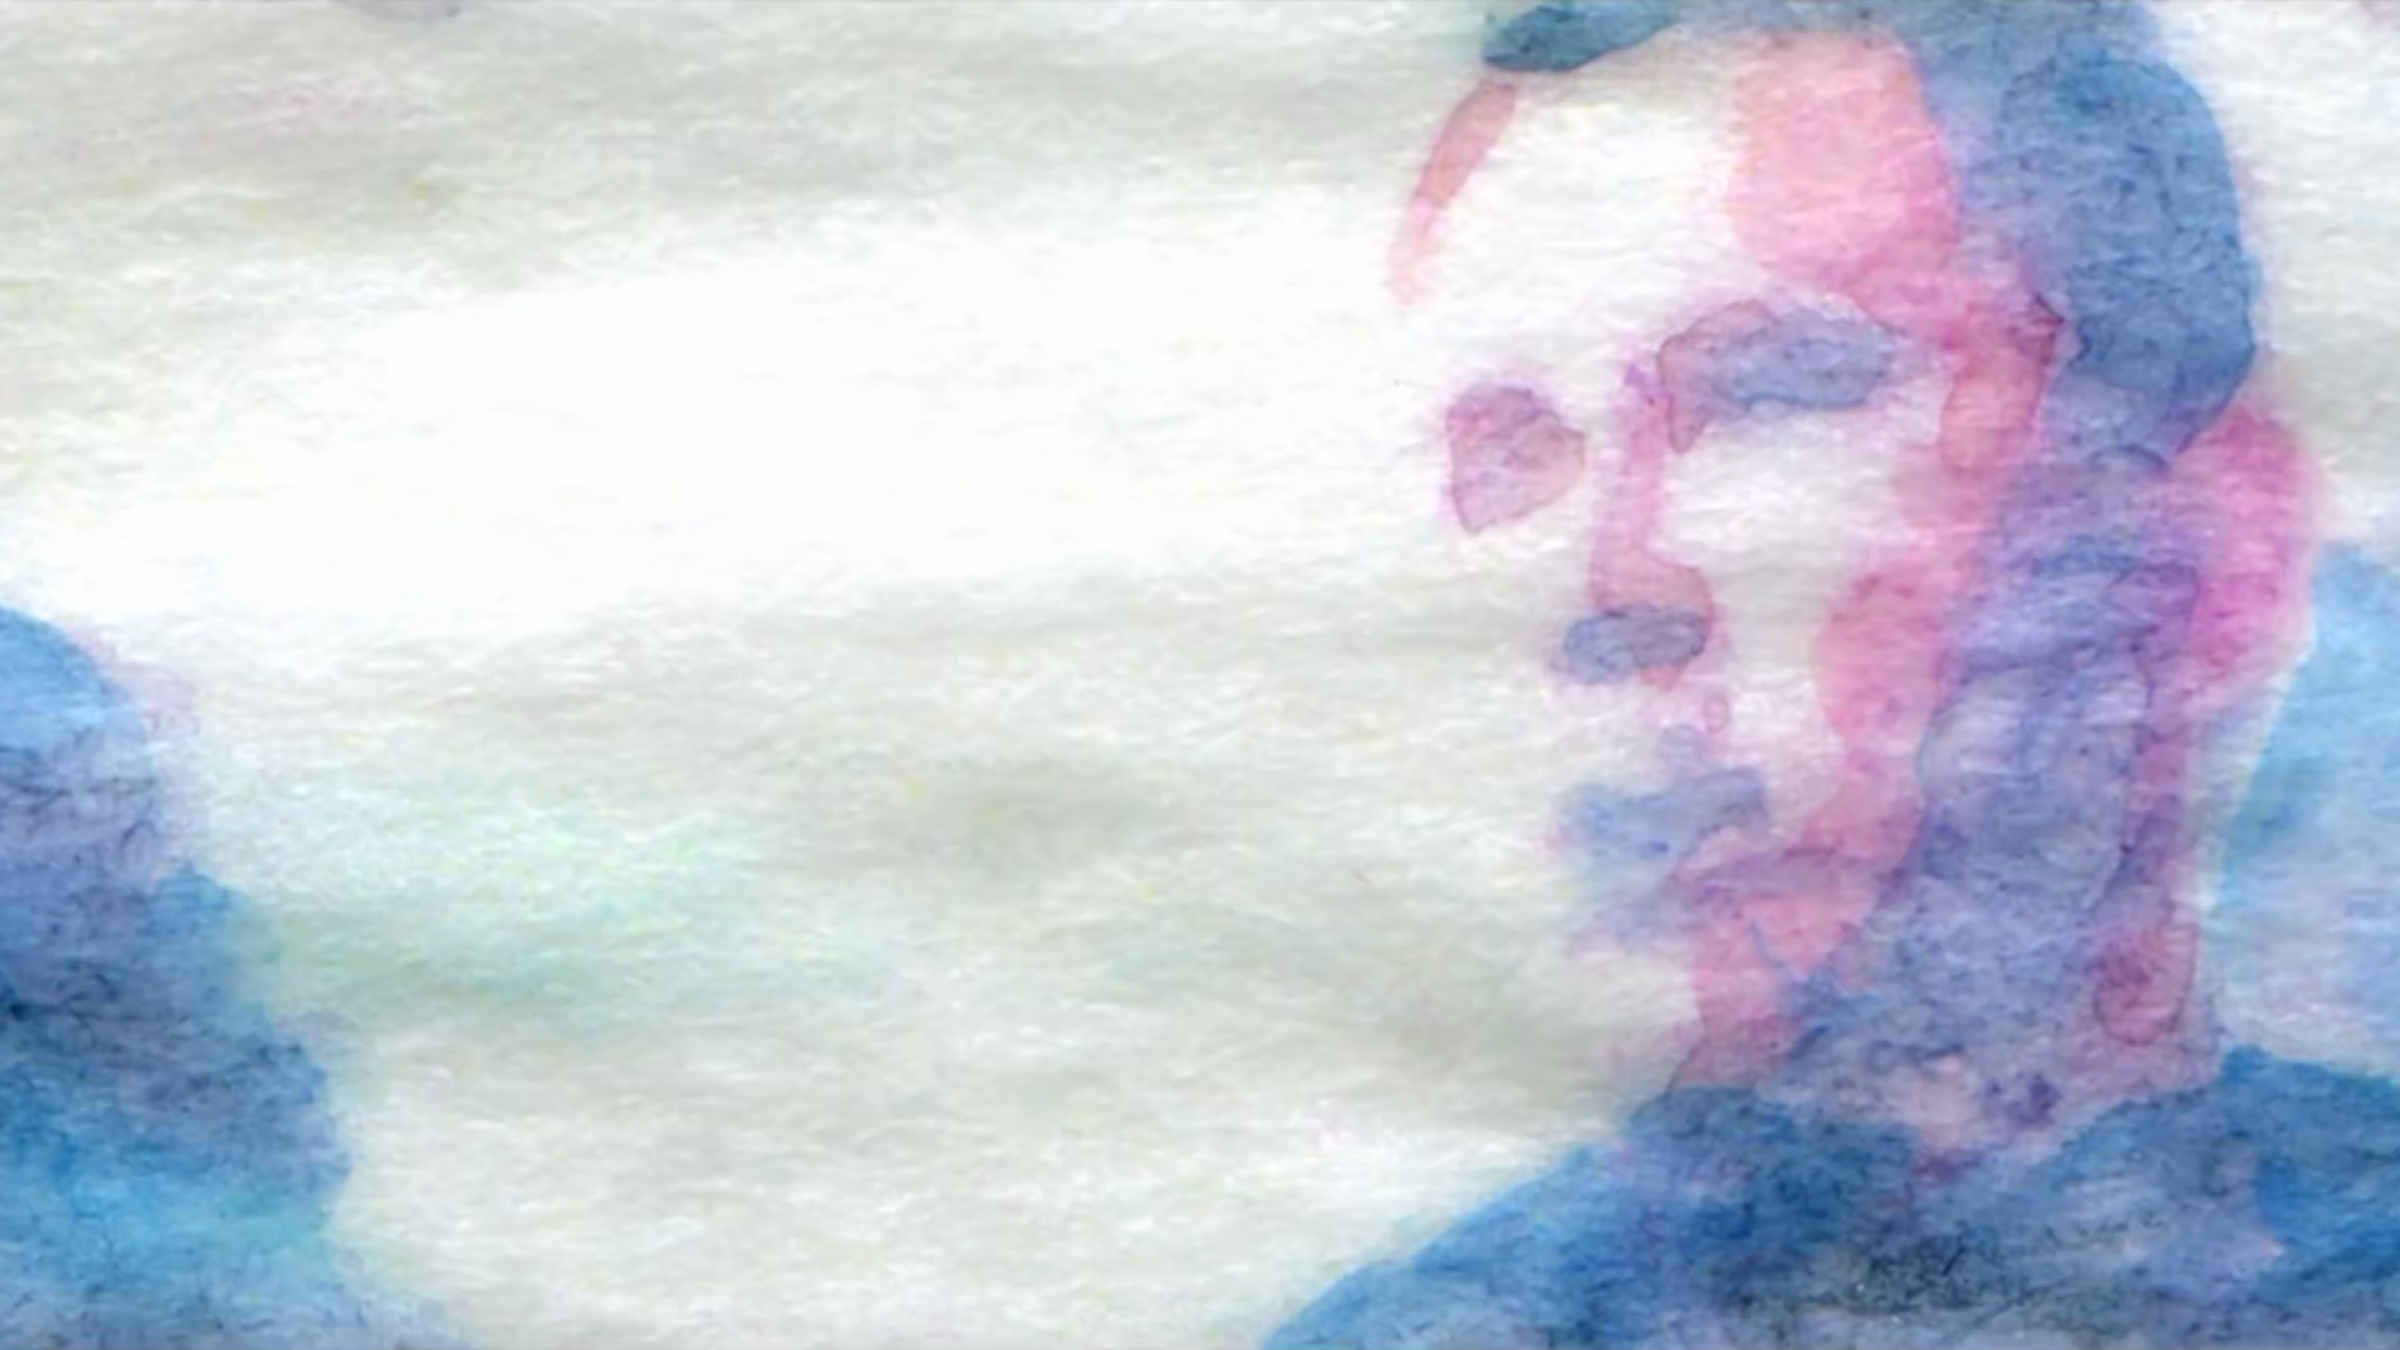 Watch 'Blade Runner' Animated with 12,597 Watercolor Paintings